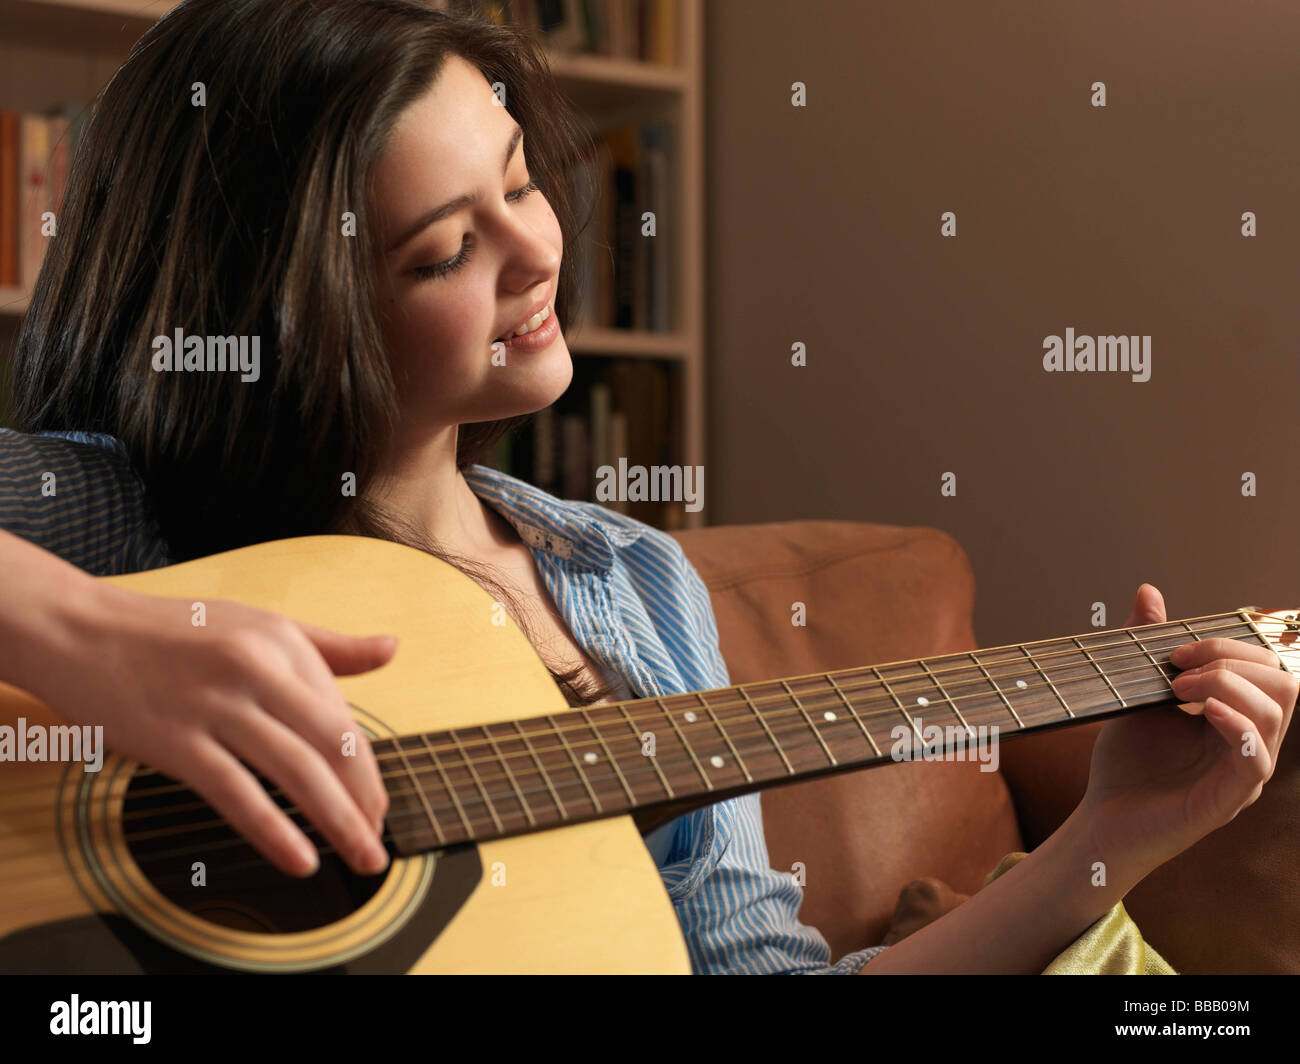 Girl, 14 playing guitar - Stock Image